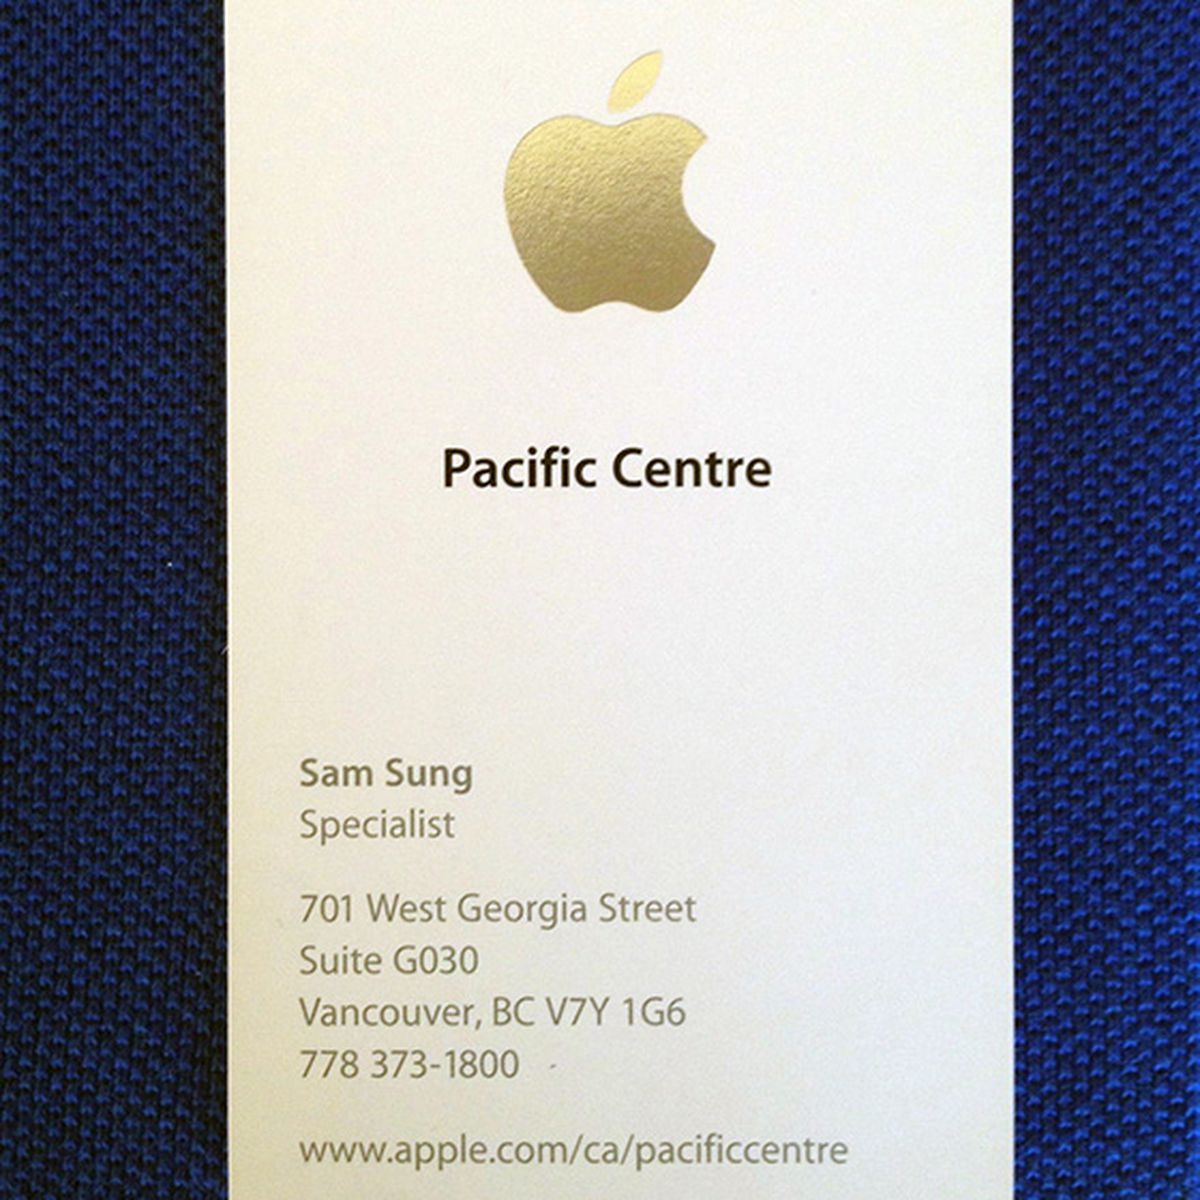 Apple Specialist Sam Sung is selling his last business card for ...